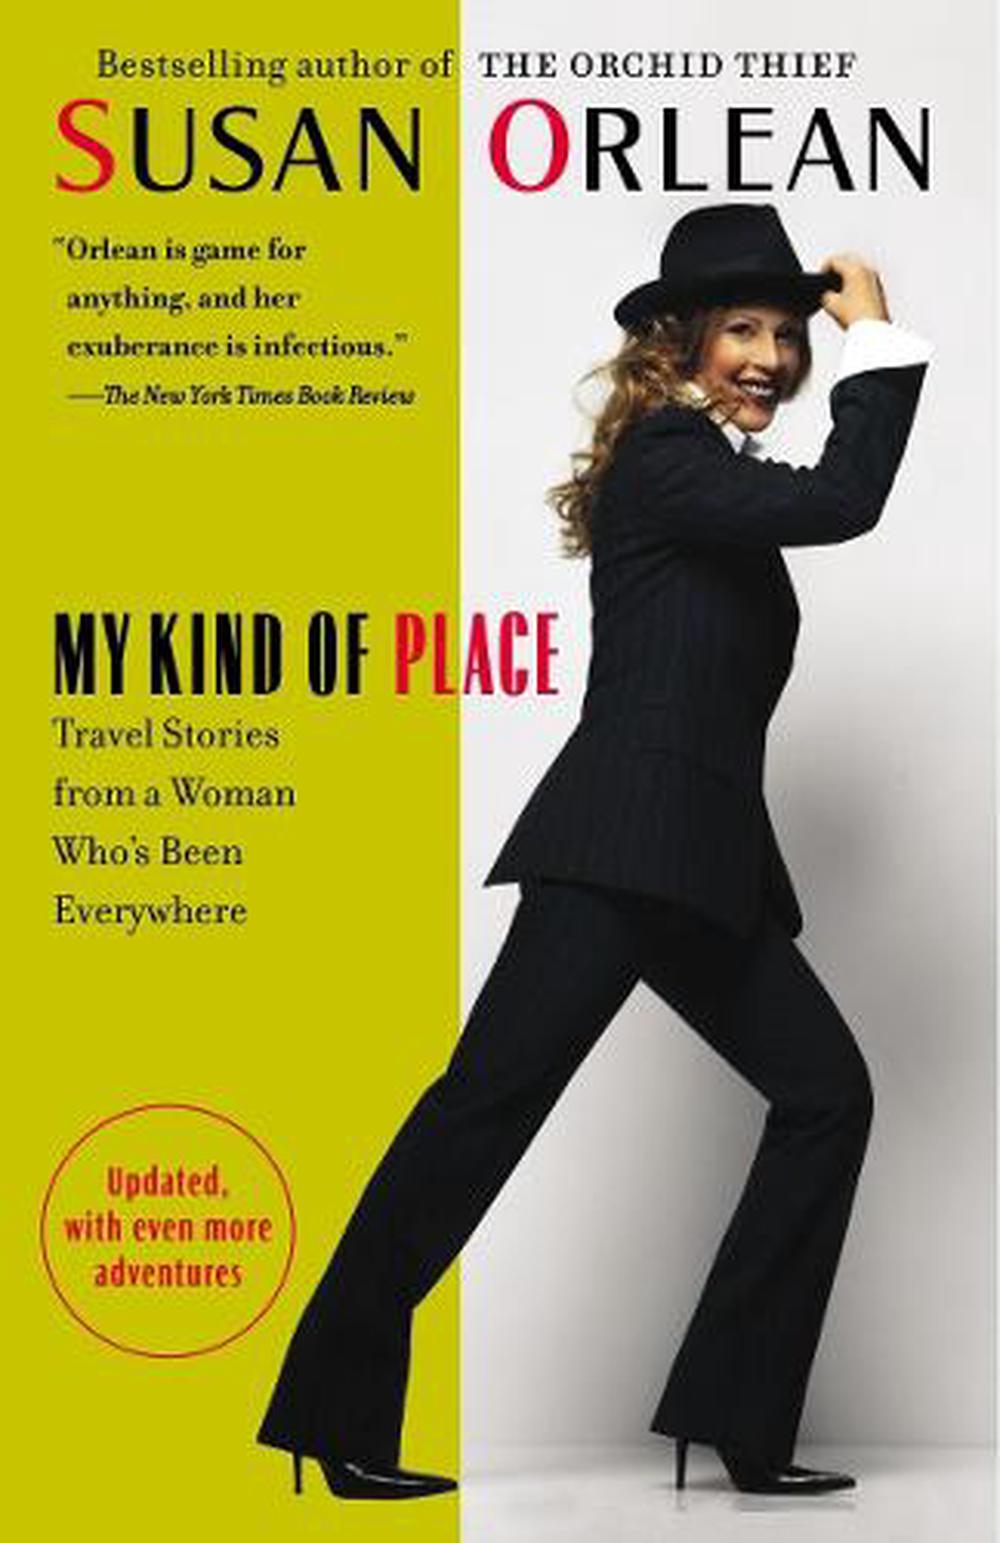 My Kind of Place: Travel Stories from a Woman Who's Been Everywhere